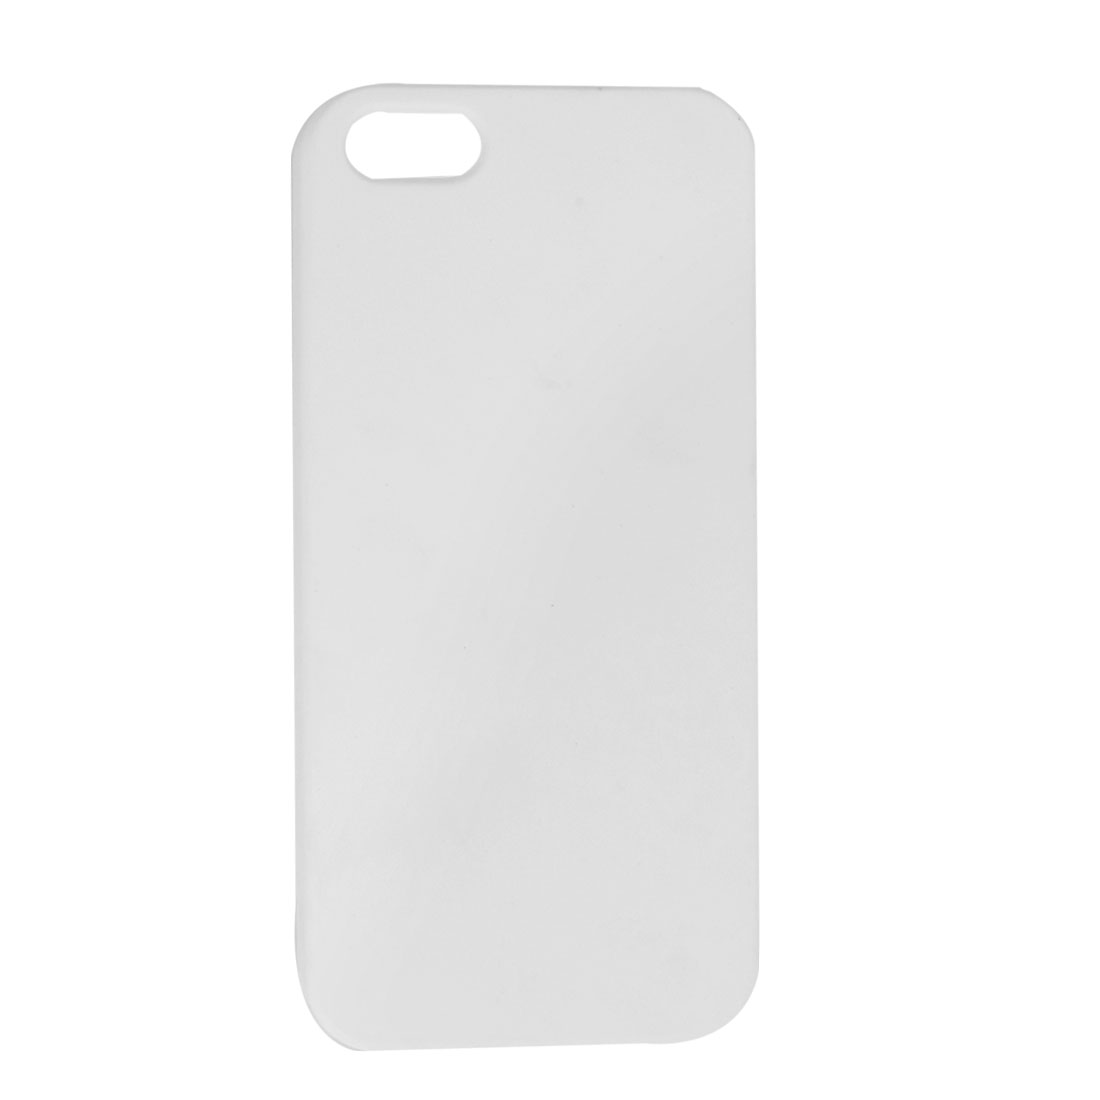 White Hard Plastic Protective Back Case for iPhone 5 5G